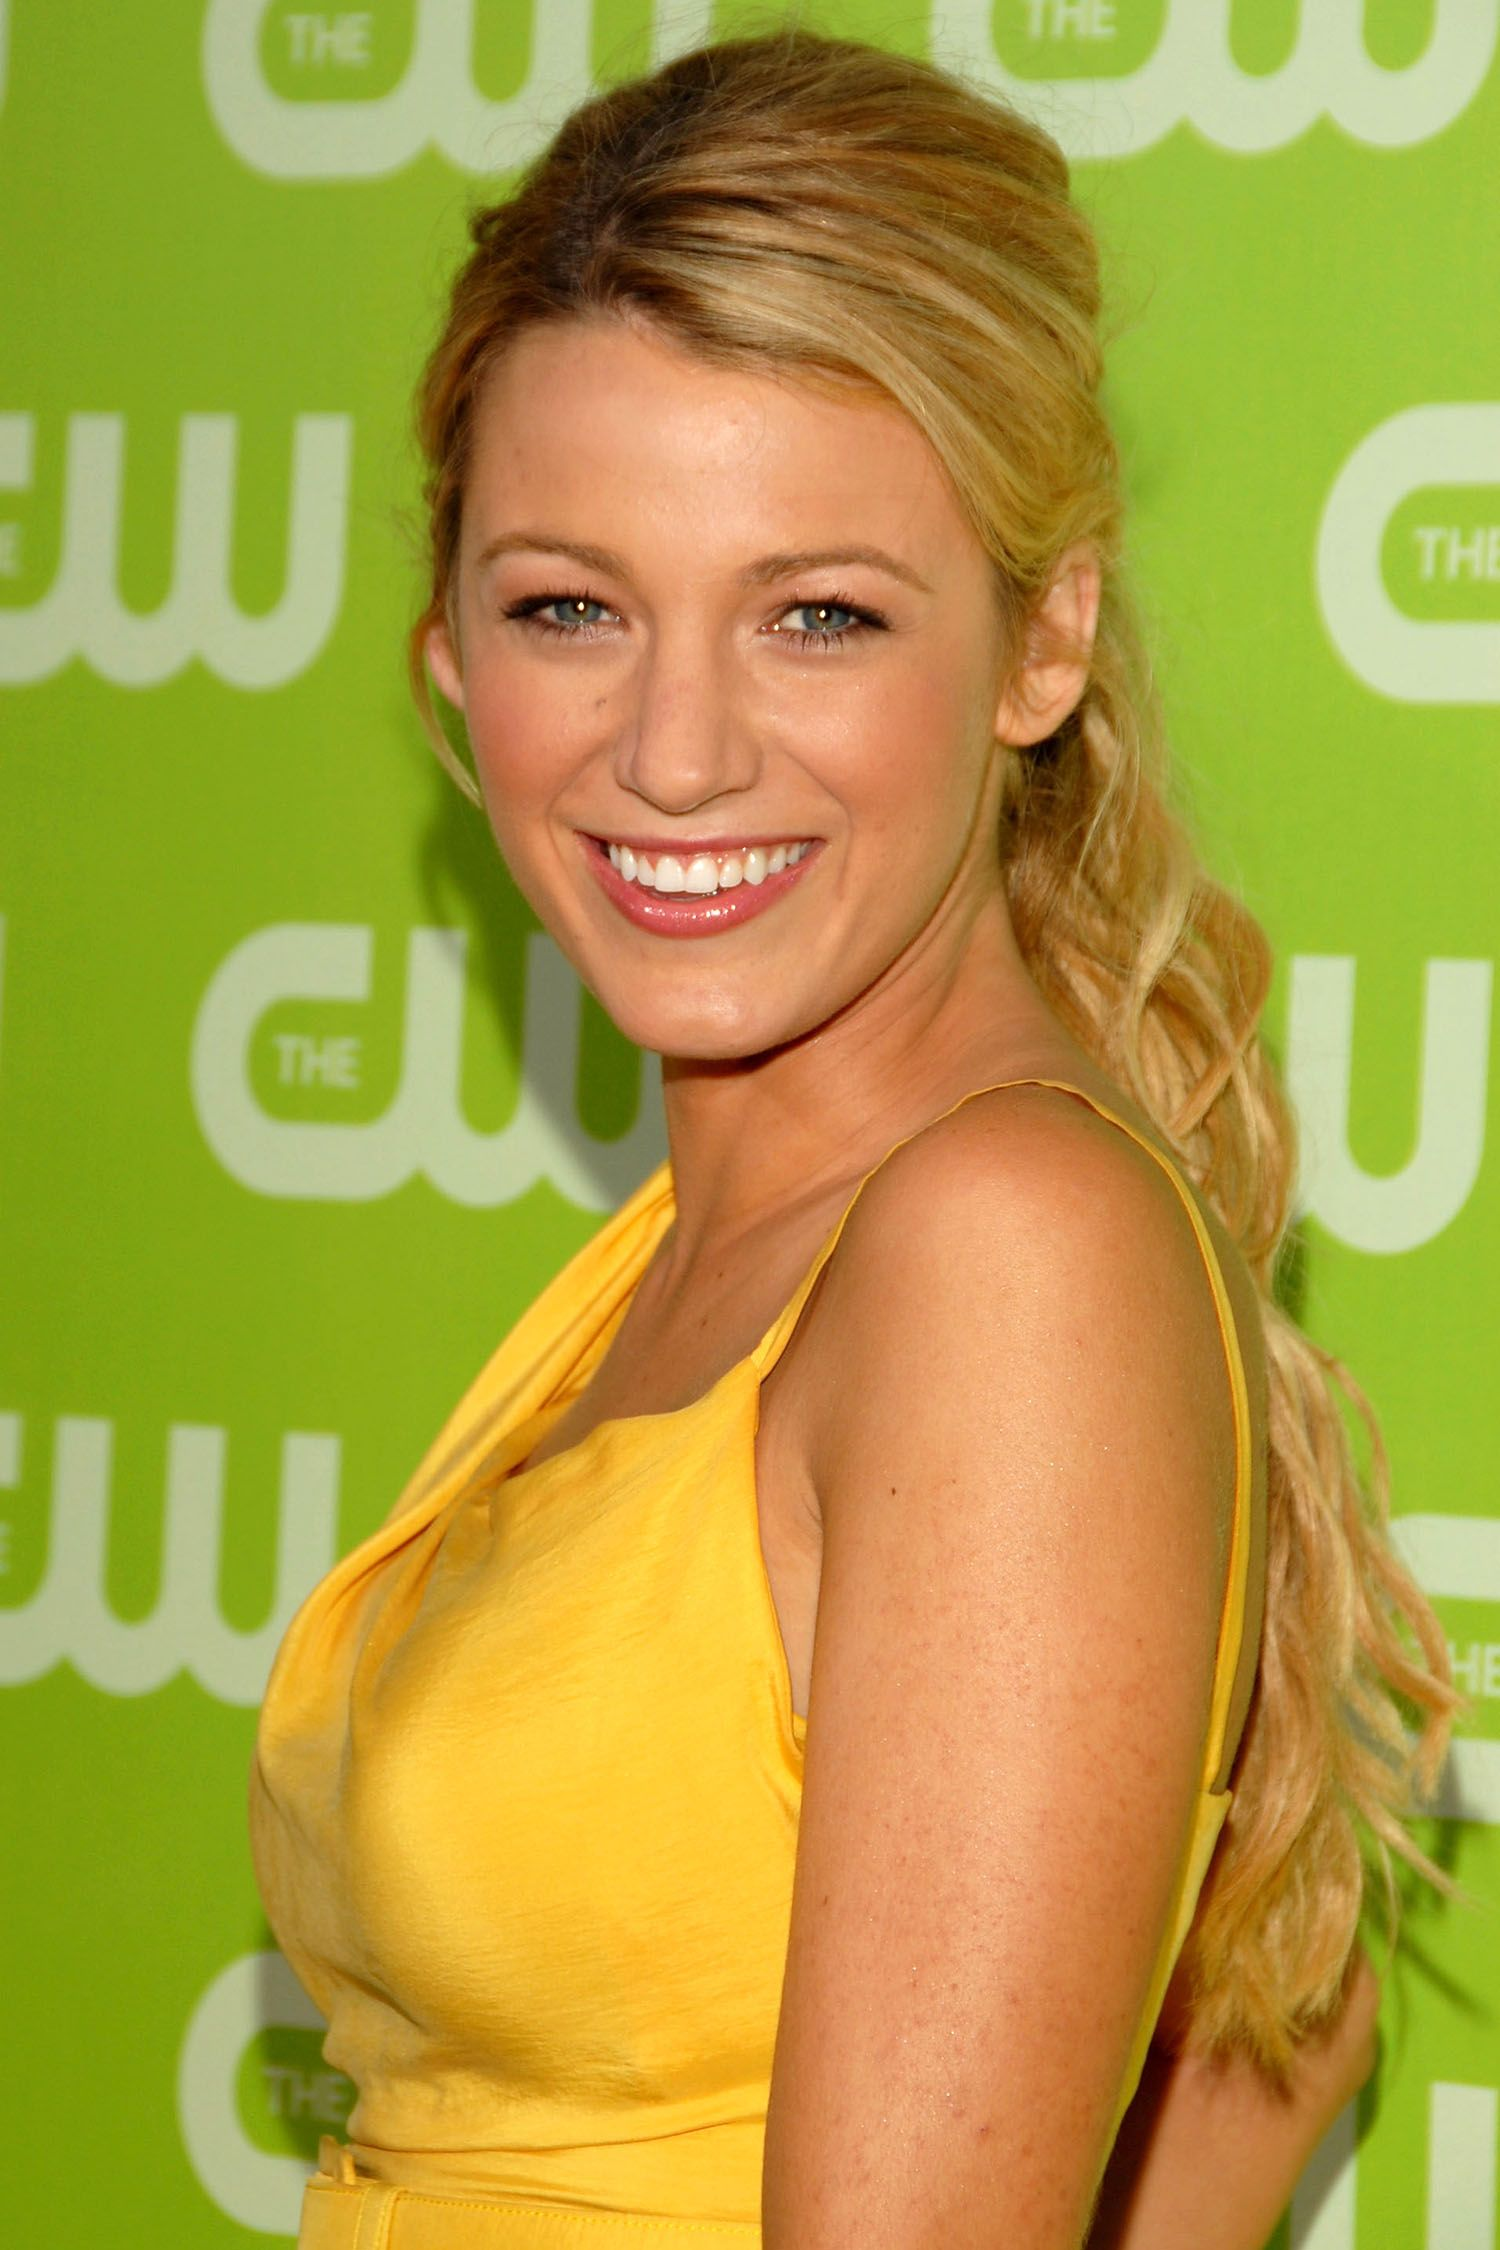 WEST HOLLYWOOD, CA - JULY 20:  Actress Blake Lively arrives at The CW TCA Party held at the Pacific Design Center on July 20, 2007 in West Hollywood, California.  (Photo by Mark Sullivan/WireImage)